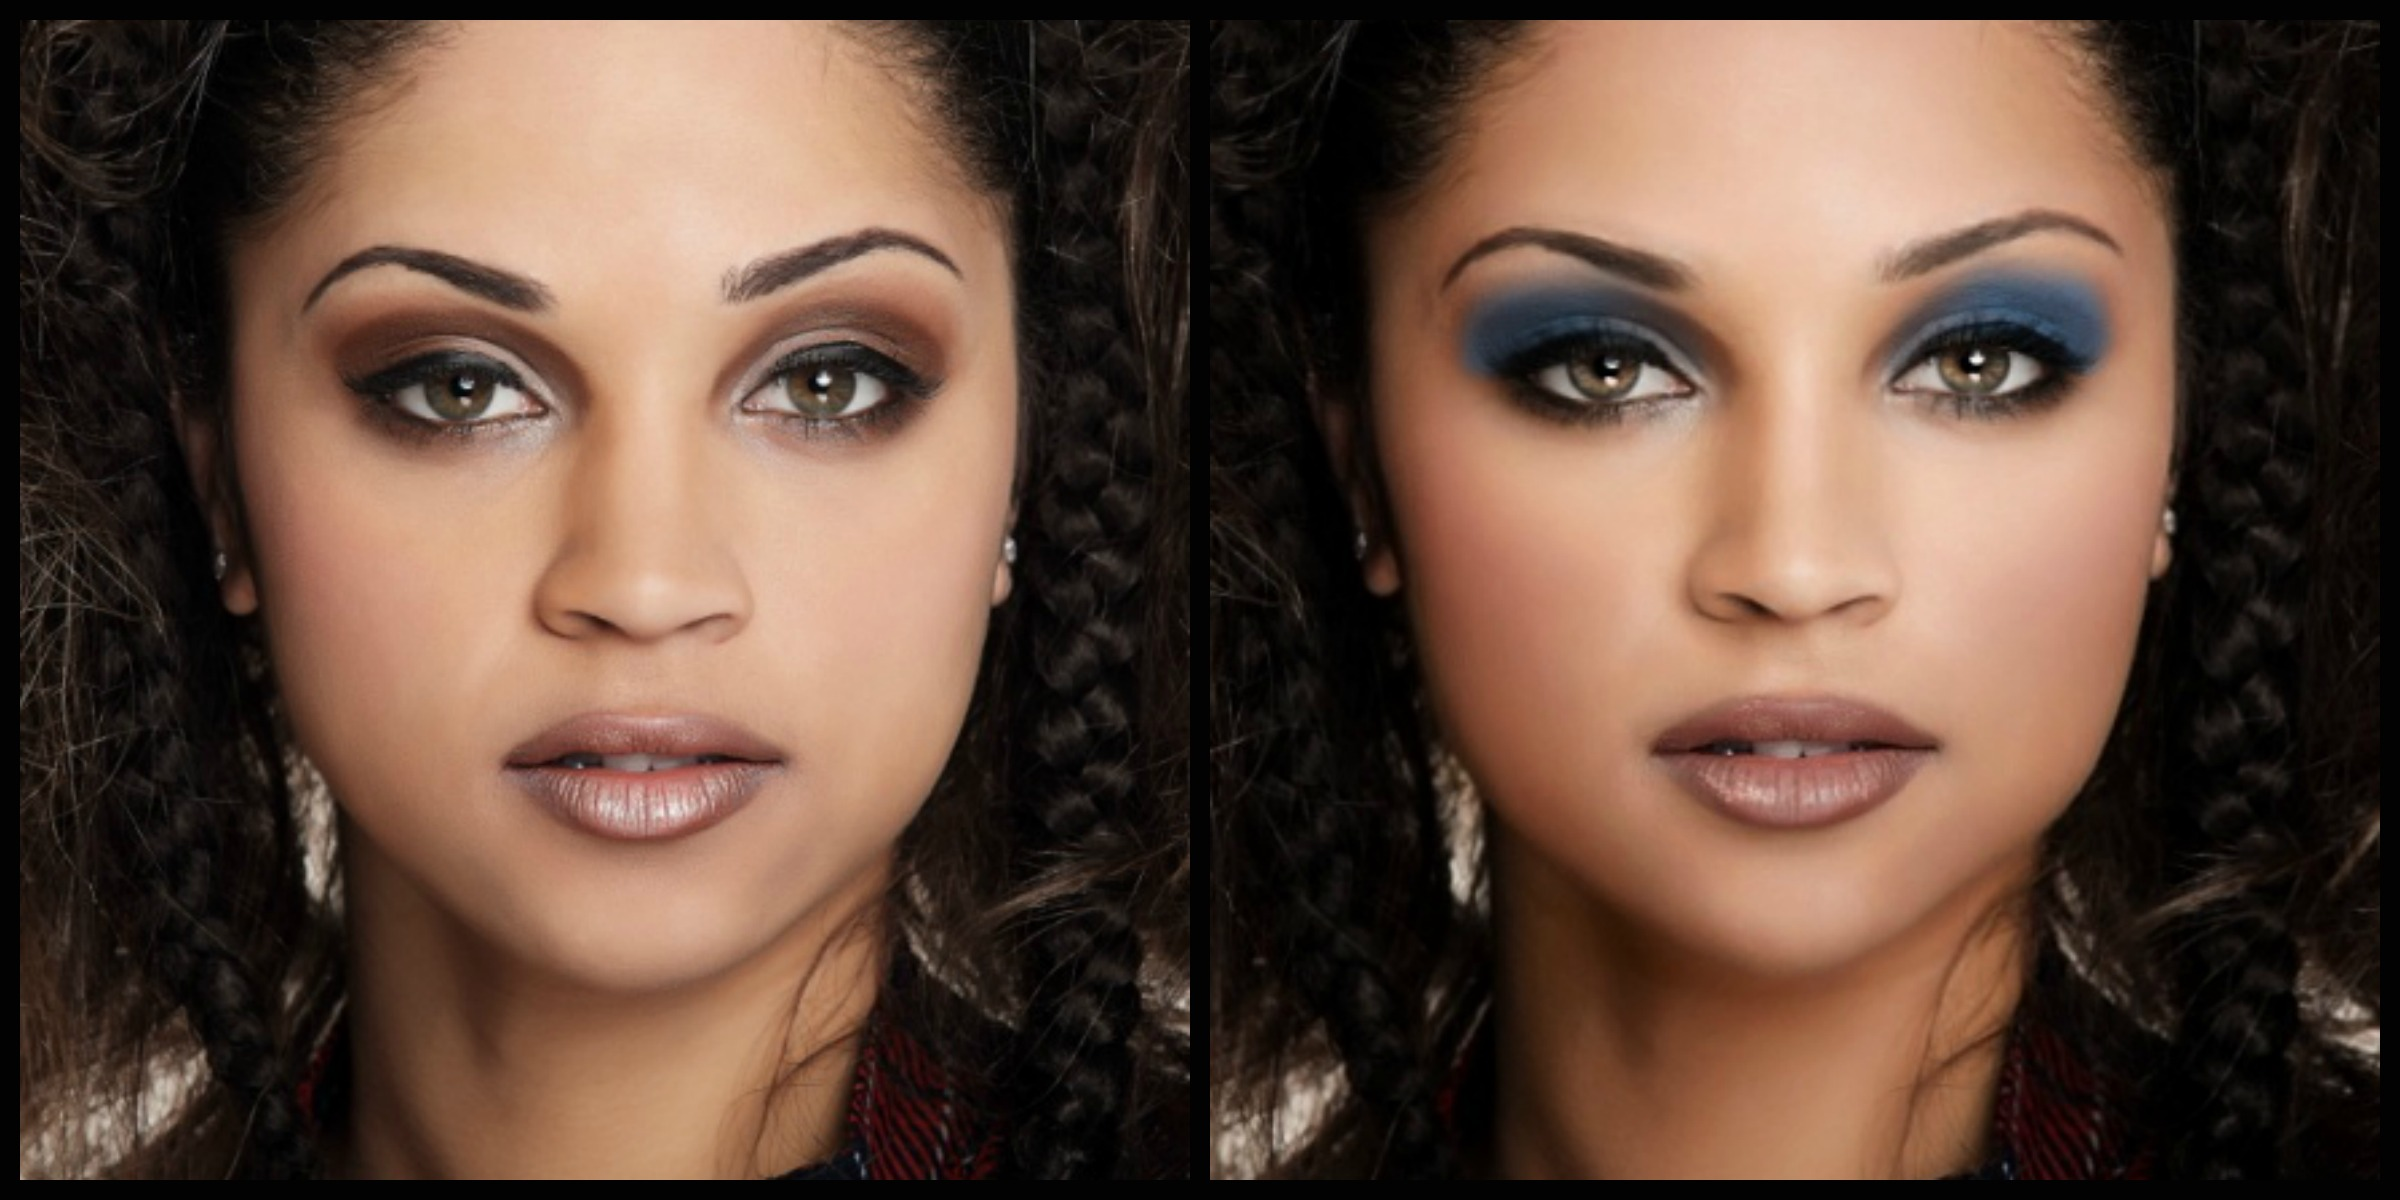 retouch, photos by A-Love